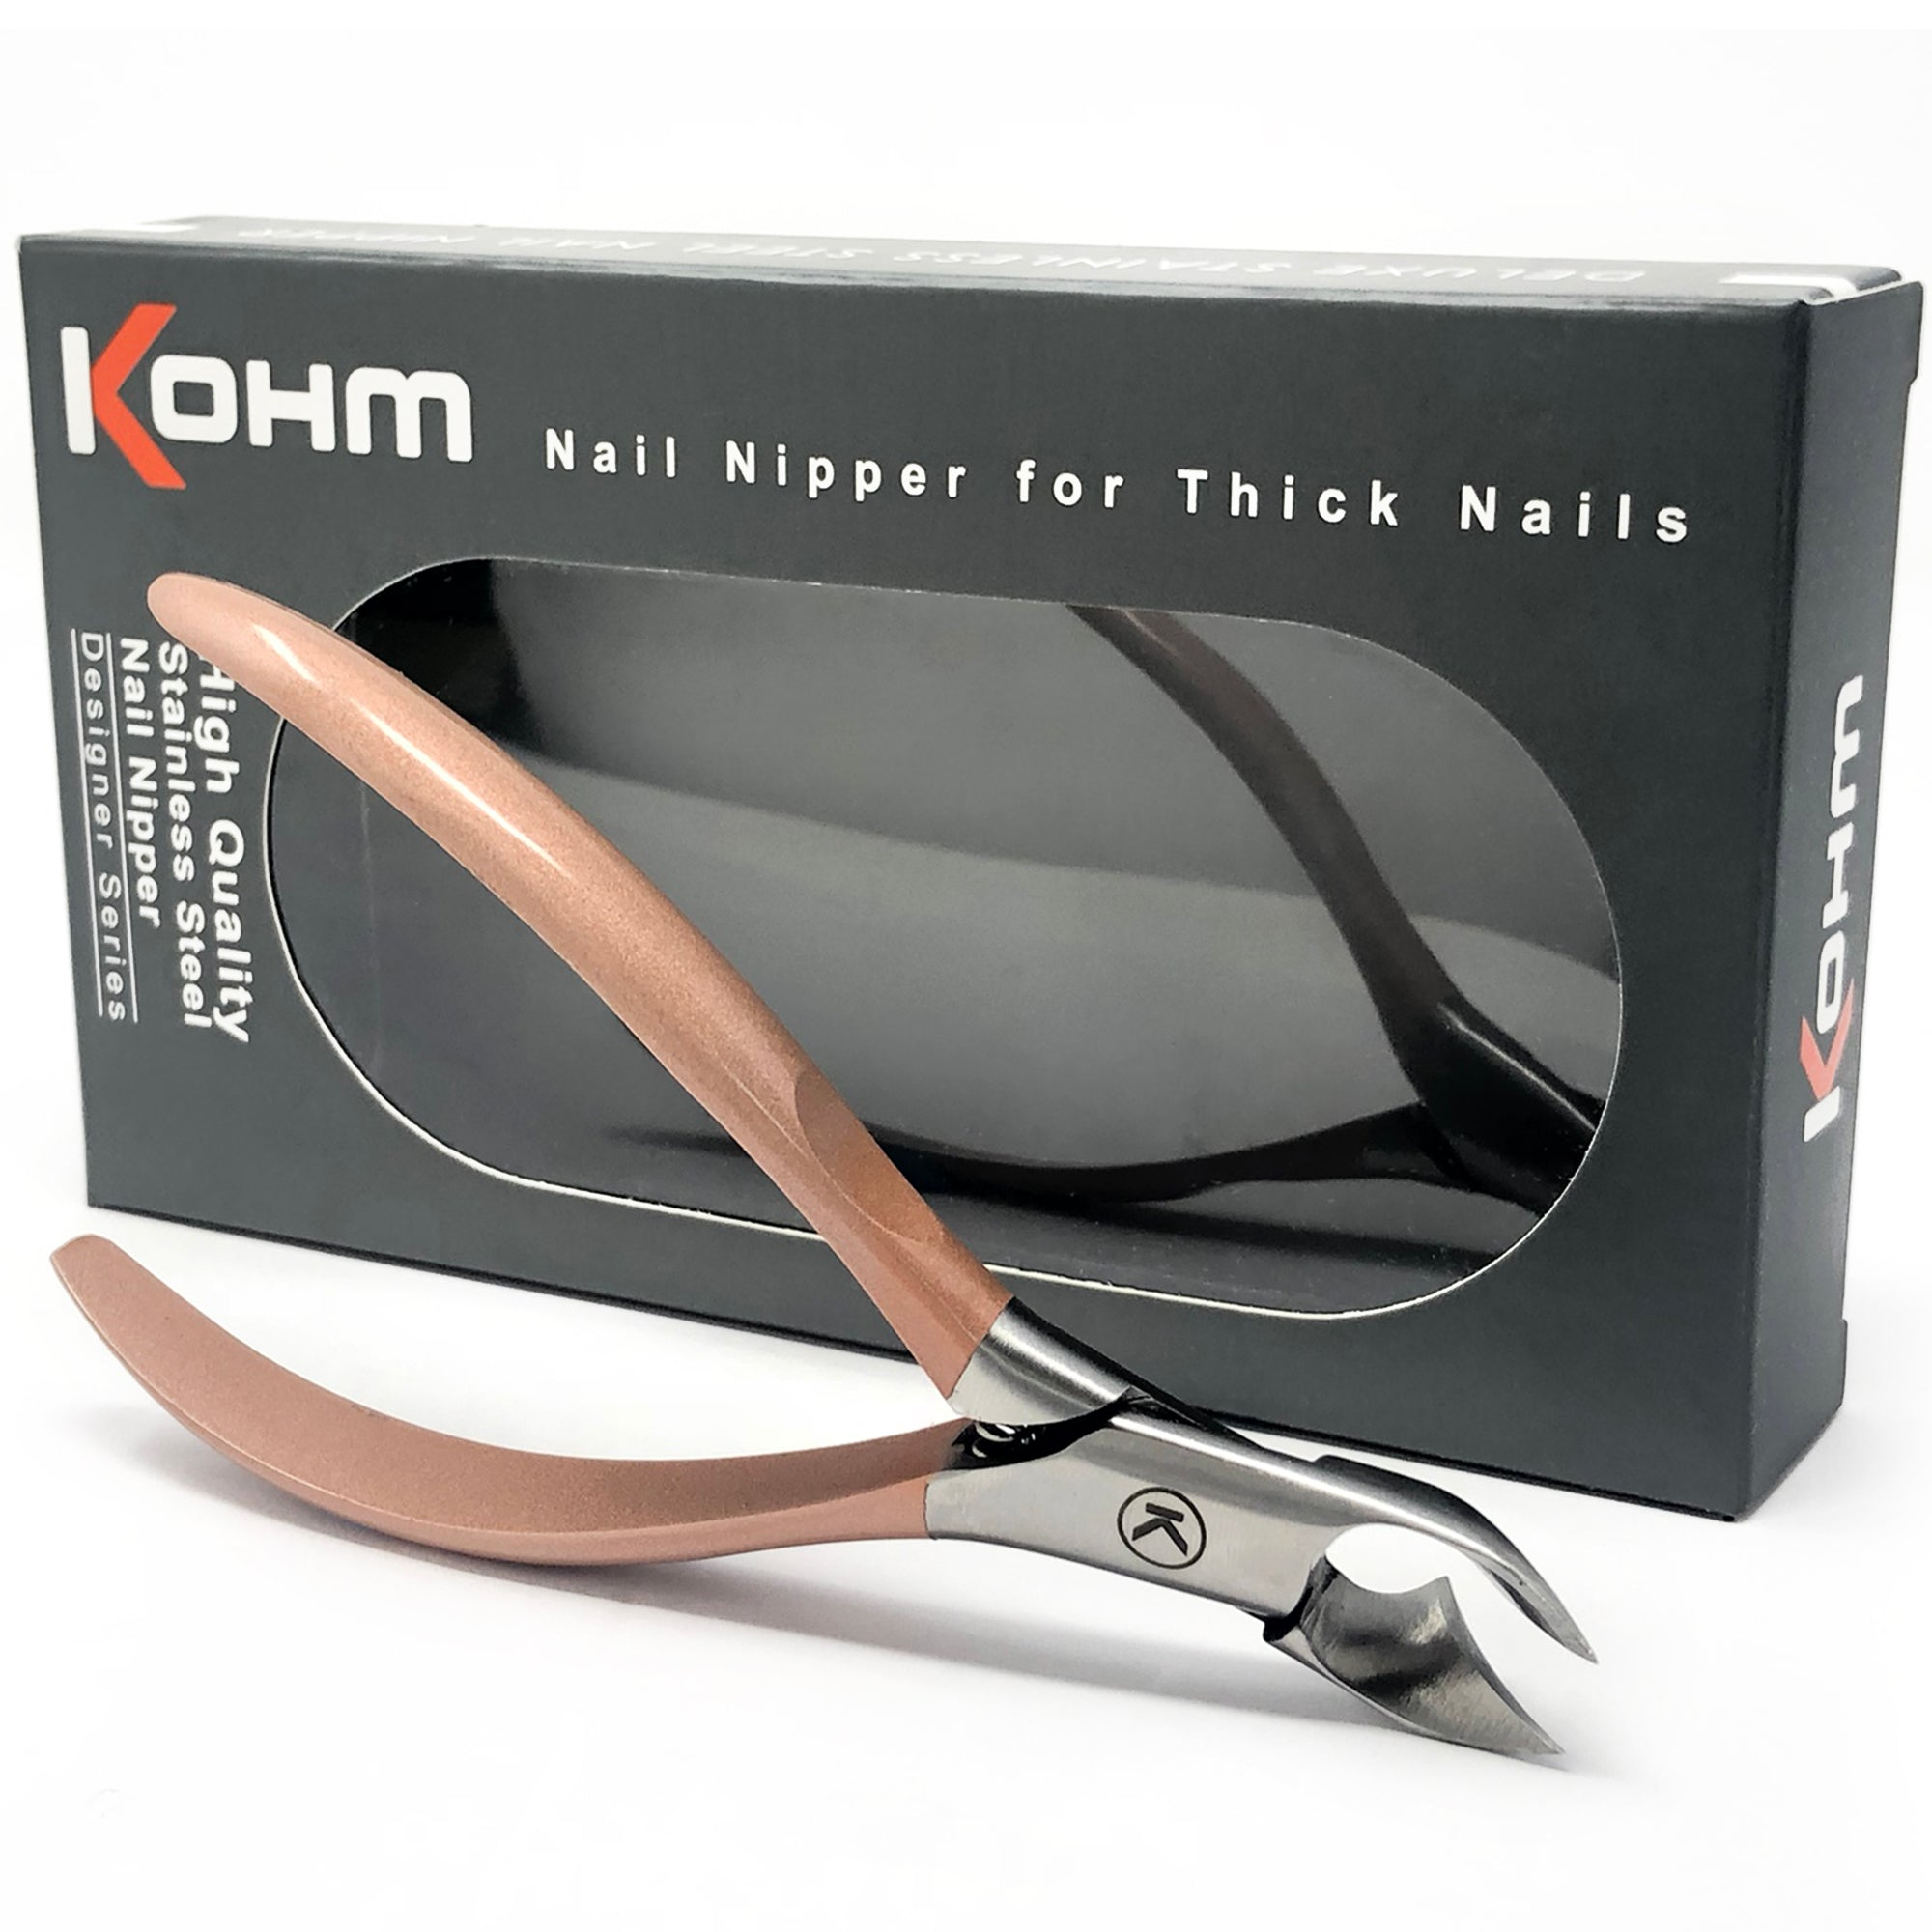 Kohm WHS-850 - Rose Gold Toenail Nipper for Thick Nails